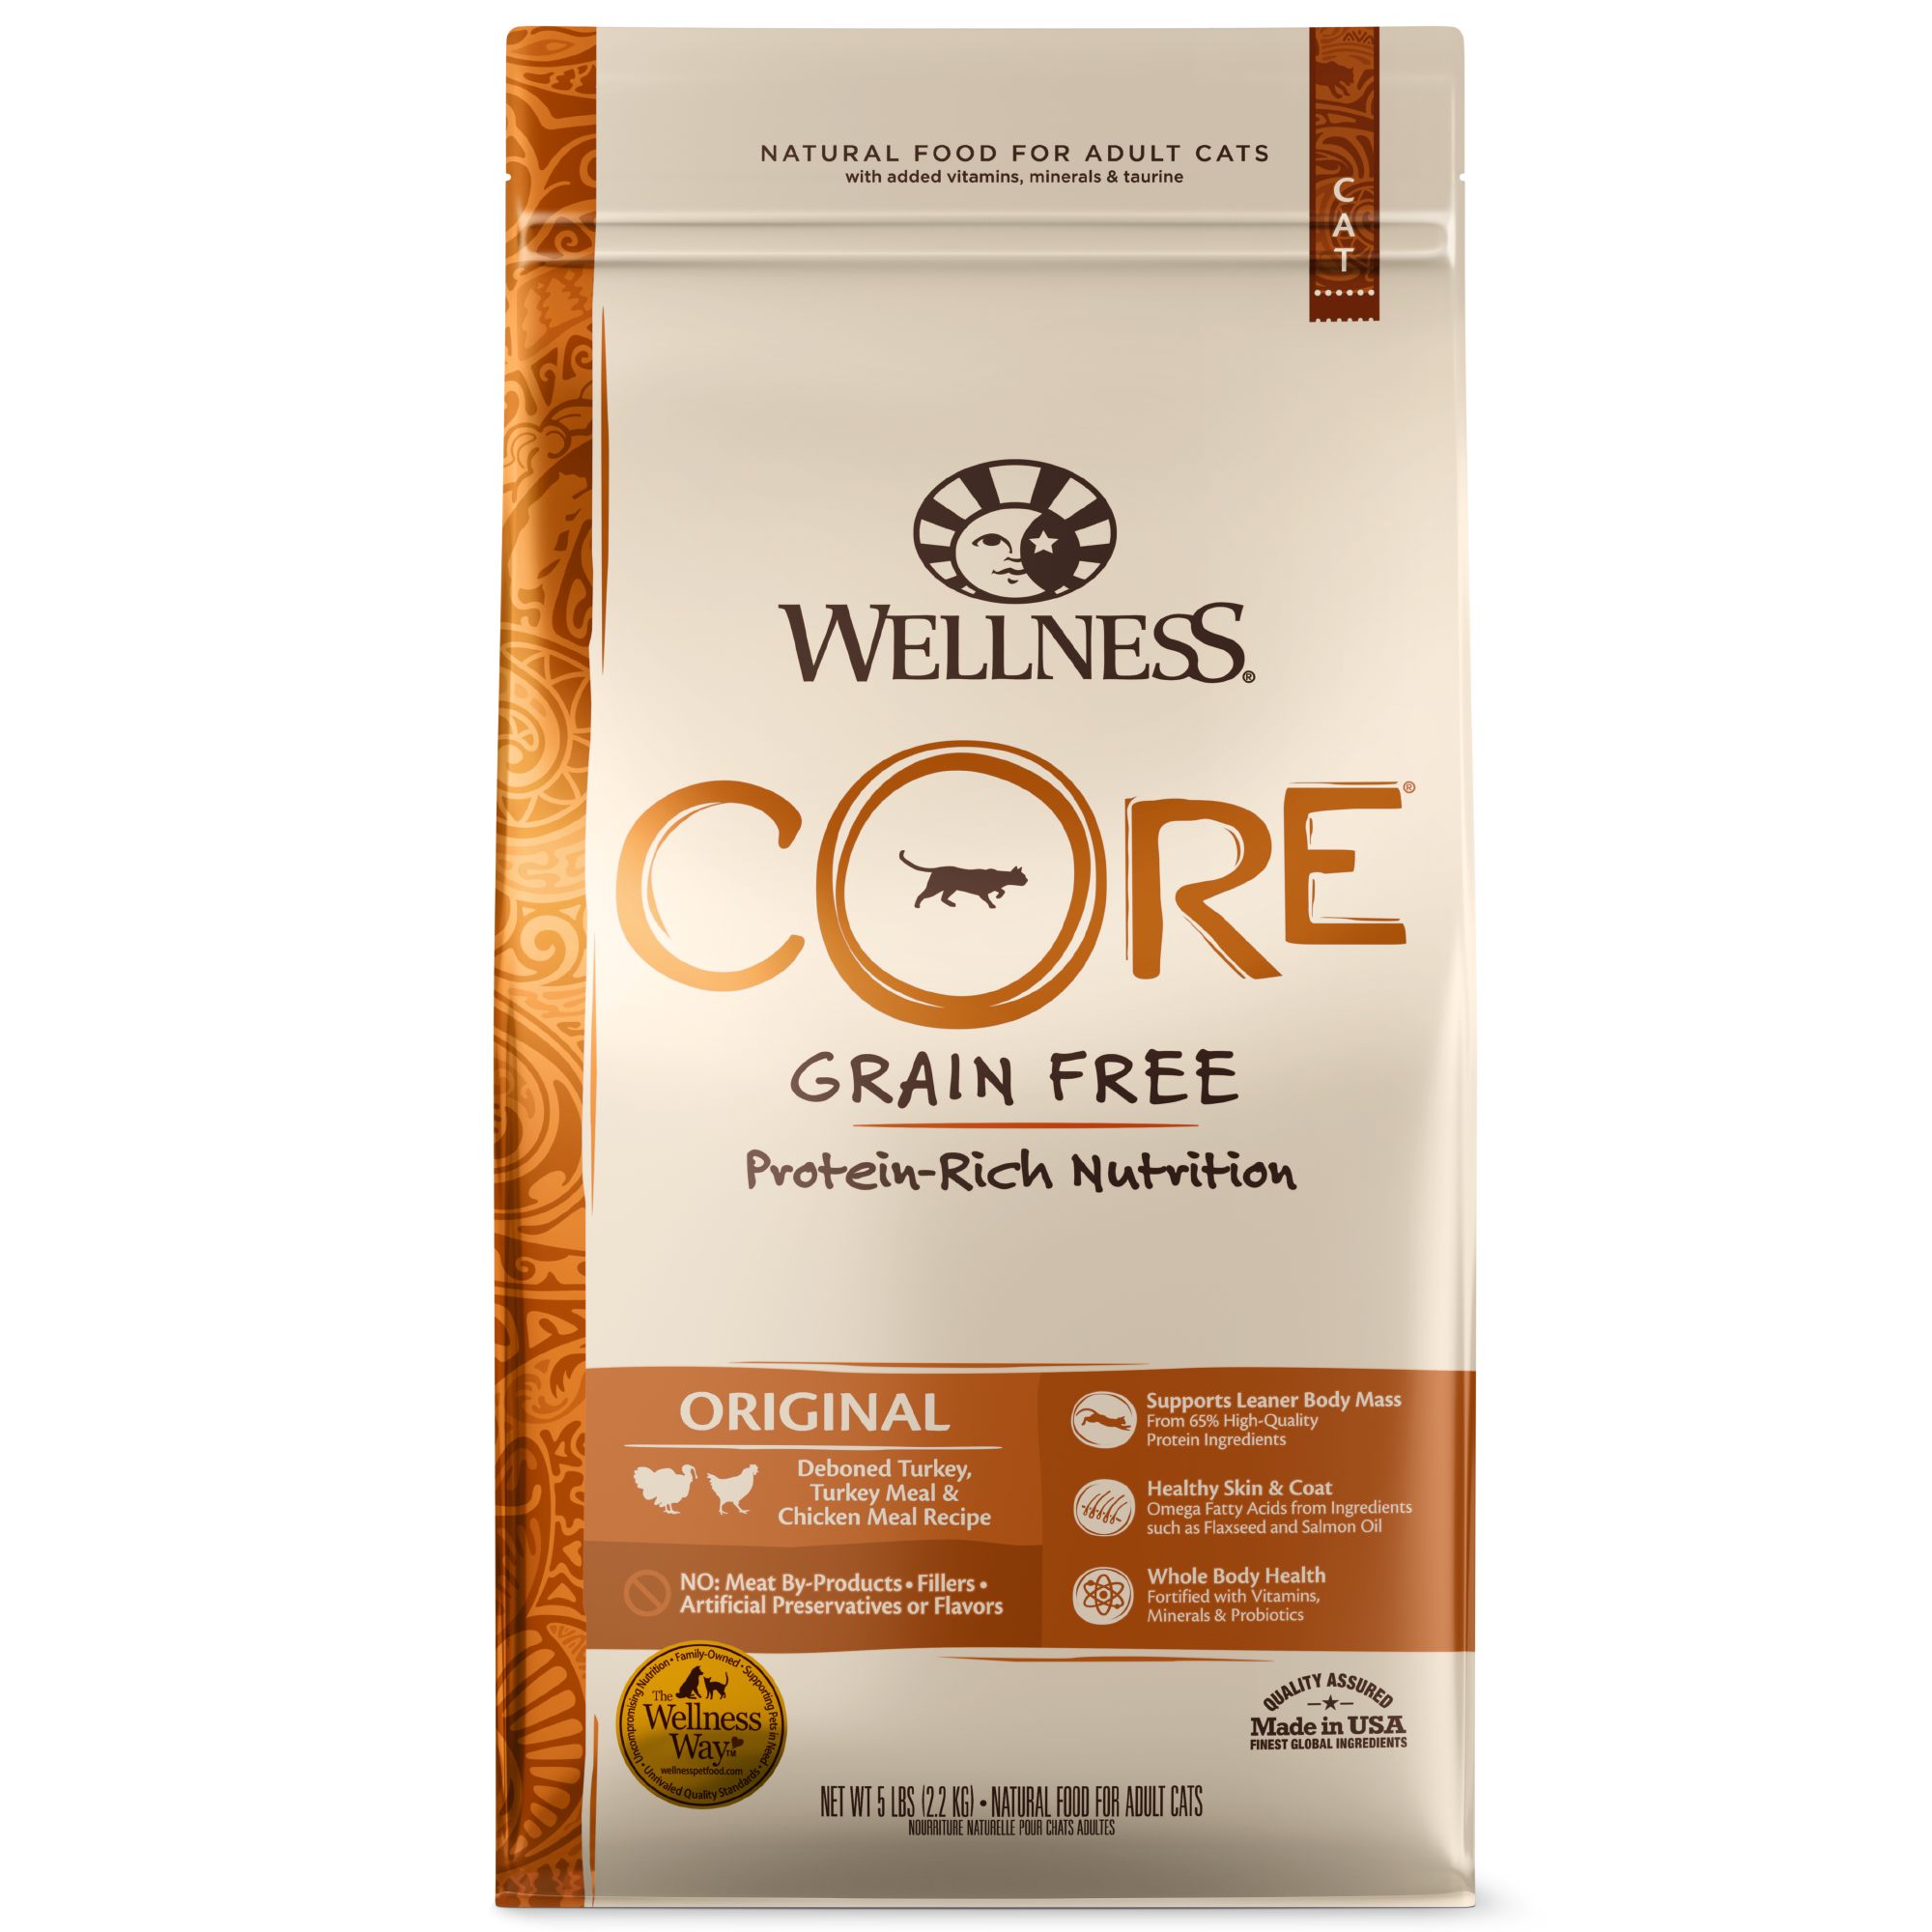 Wellness Core Original, Grain-Free Deboned Turkey, Turkey Meal & Chicken Meal Recipe Dry Cat Food, 2-lb bag